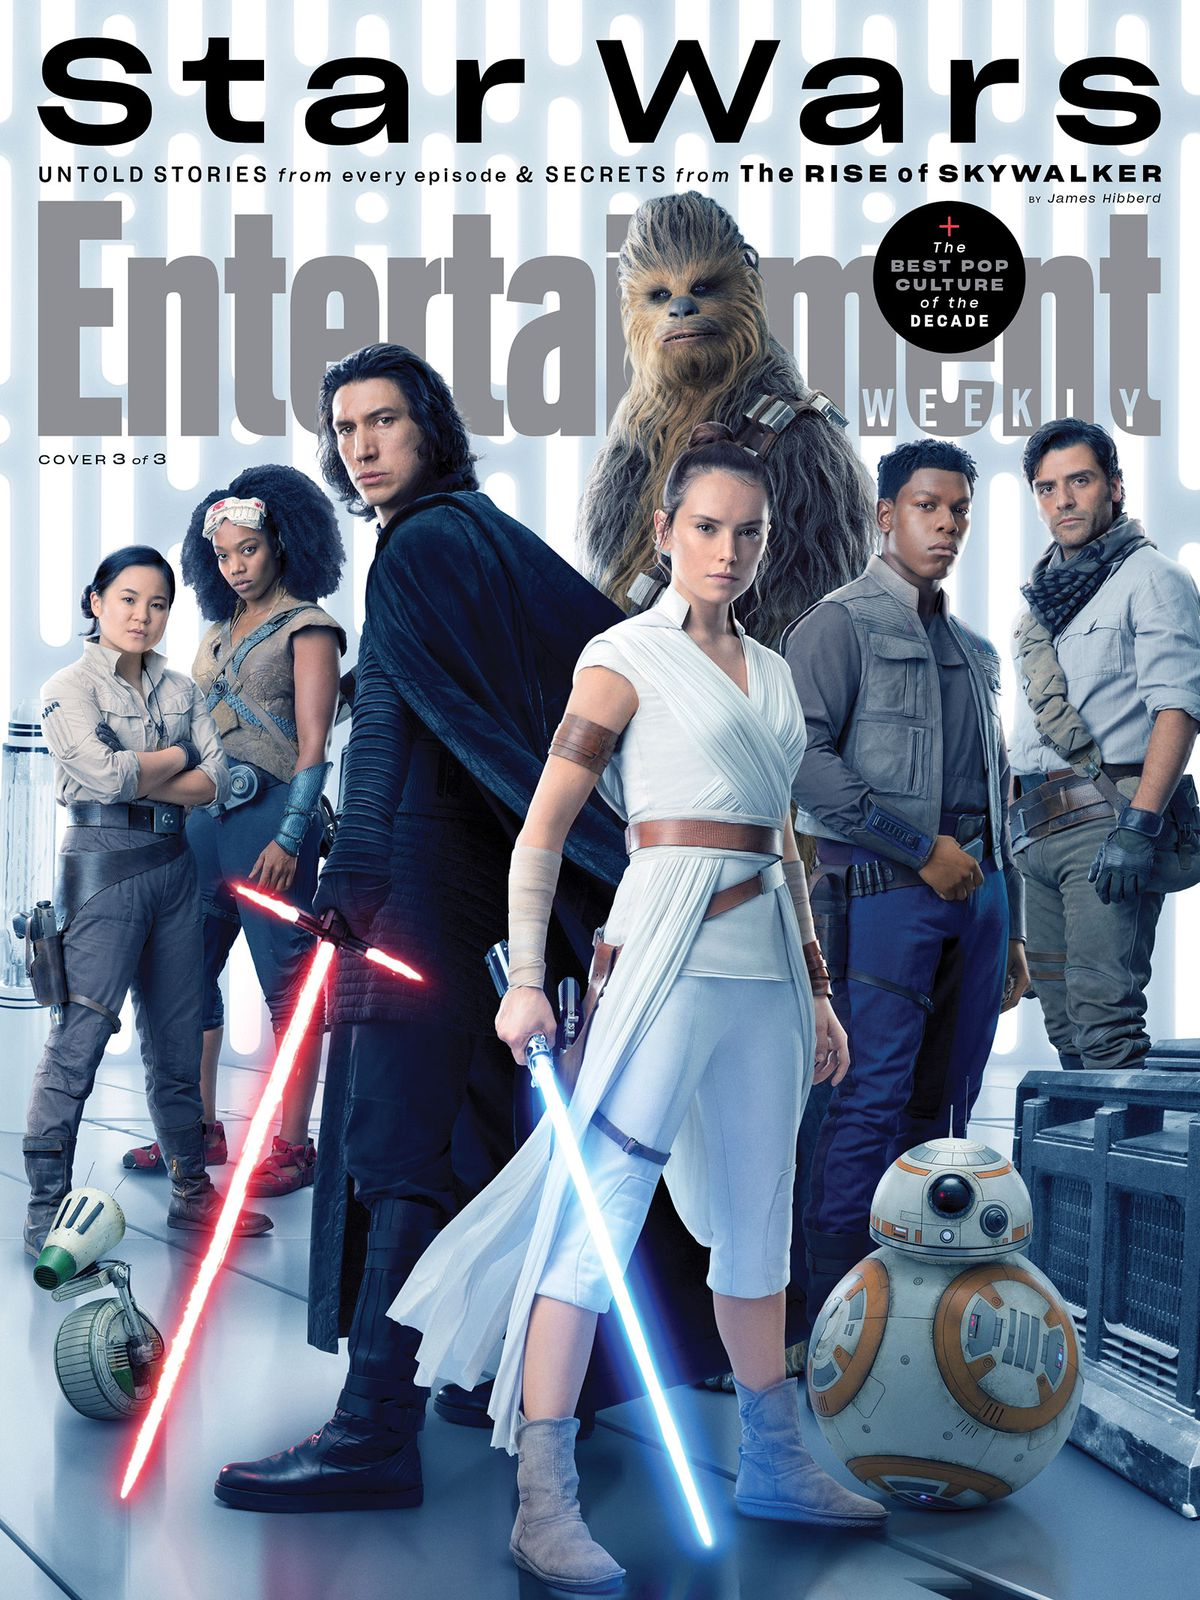 Star Wars The Rise Of Skywalker See The Exclusive Entertainment Weekly Covers Deseret News